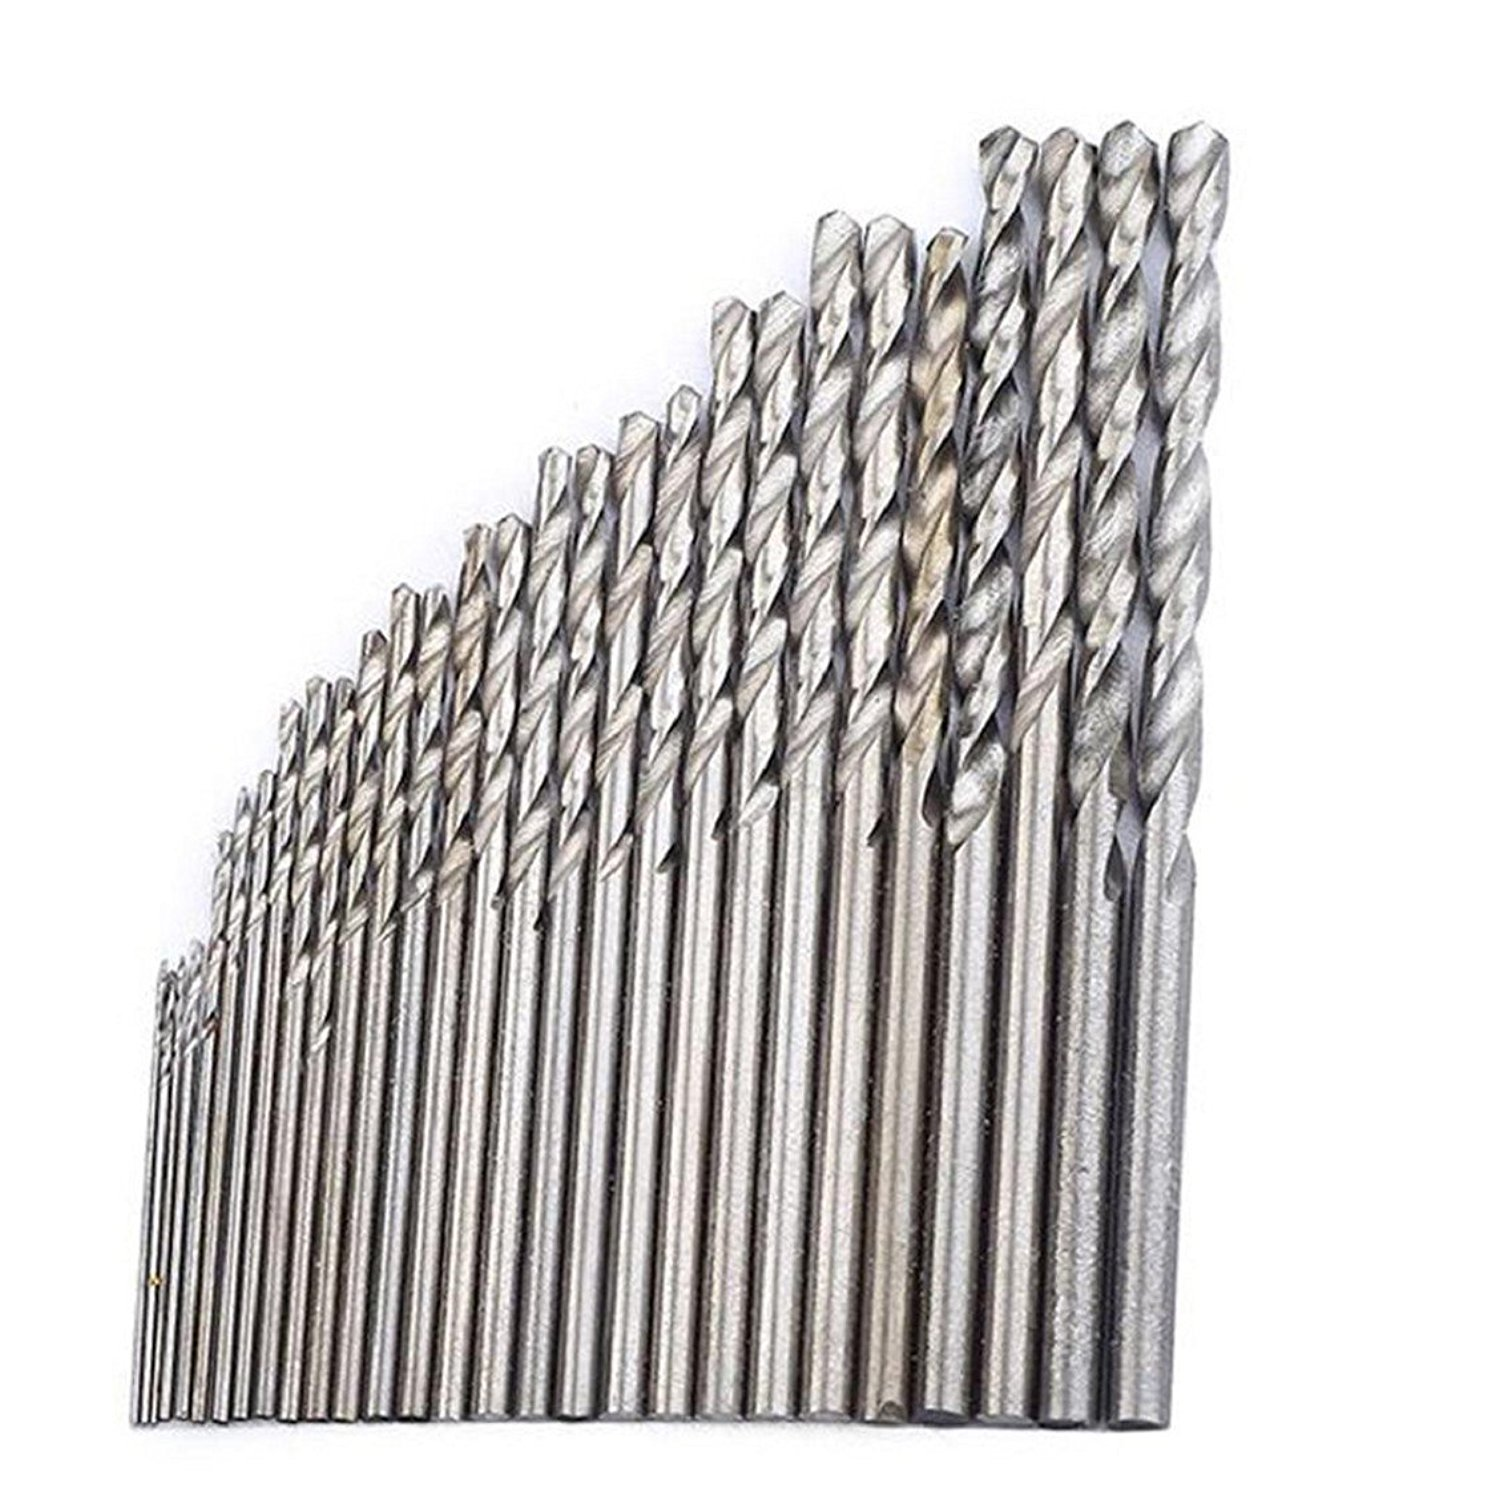 Naladoo Micro HSS Twist Drilling Bit Straight Shank Electrical Drill Tool,28 Pcs Mini Drill HSS Bit 0.3mm-3.0mm Straight Shank Pcb Twist Drill Bits Set